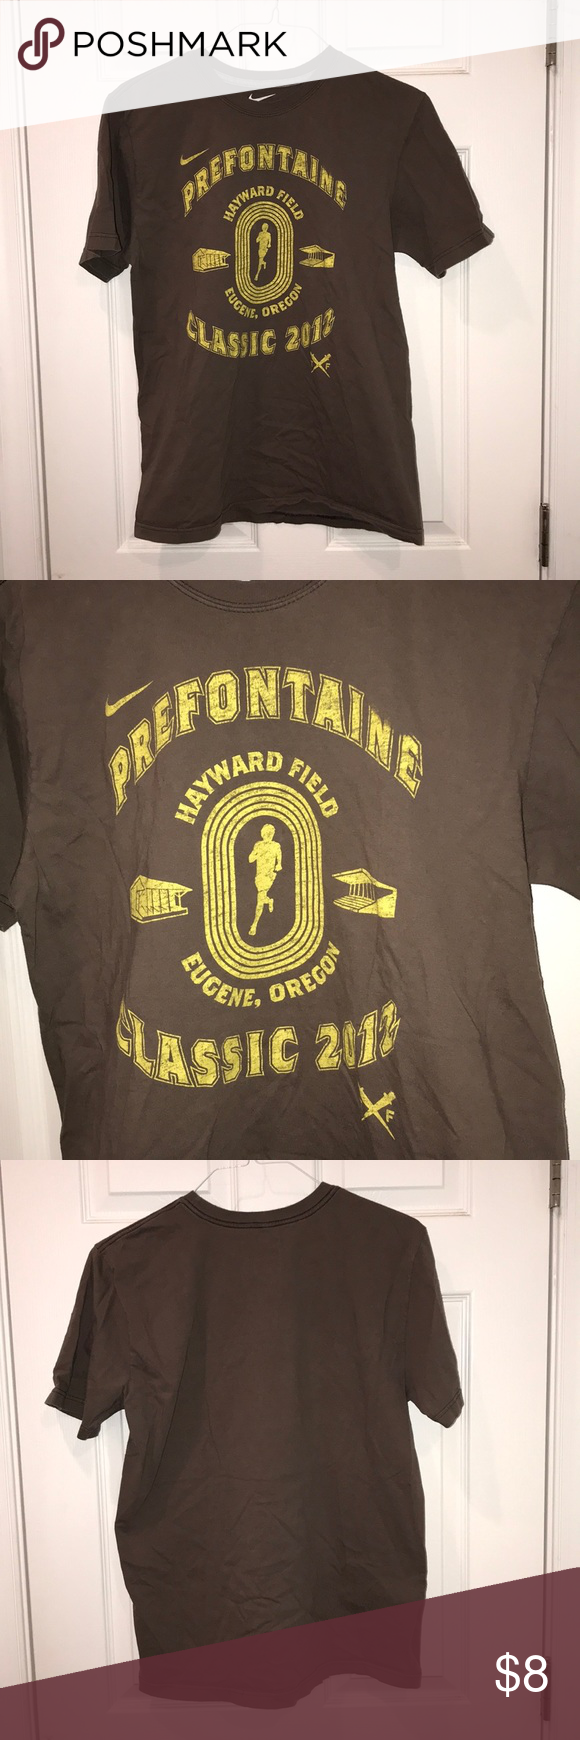 572fd475 2012 Prefontaine Classic Hayward Field Men's Tee L Official meet t-shirt  from the 2012 Pre Classic! Size men's large. From smoke free home.